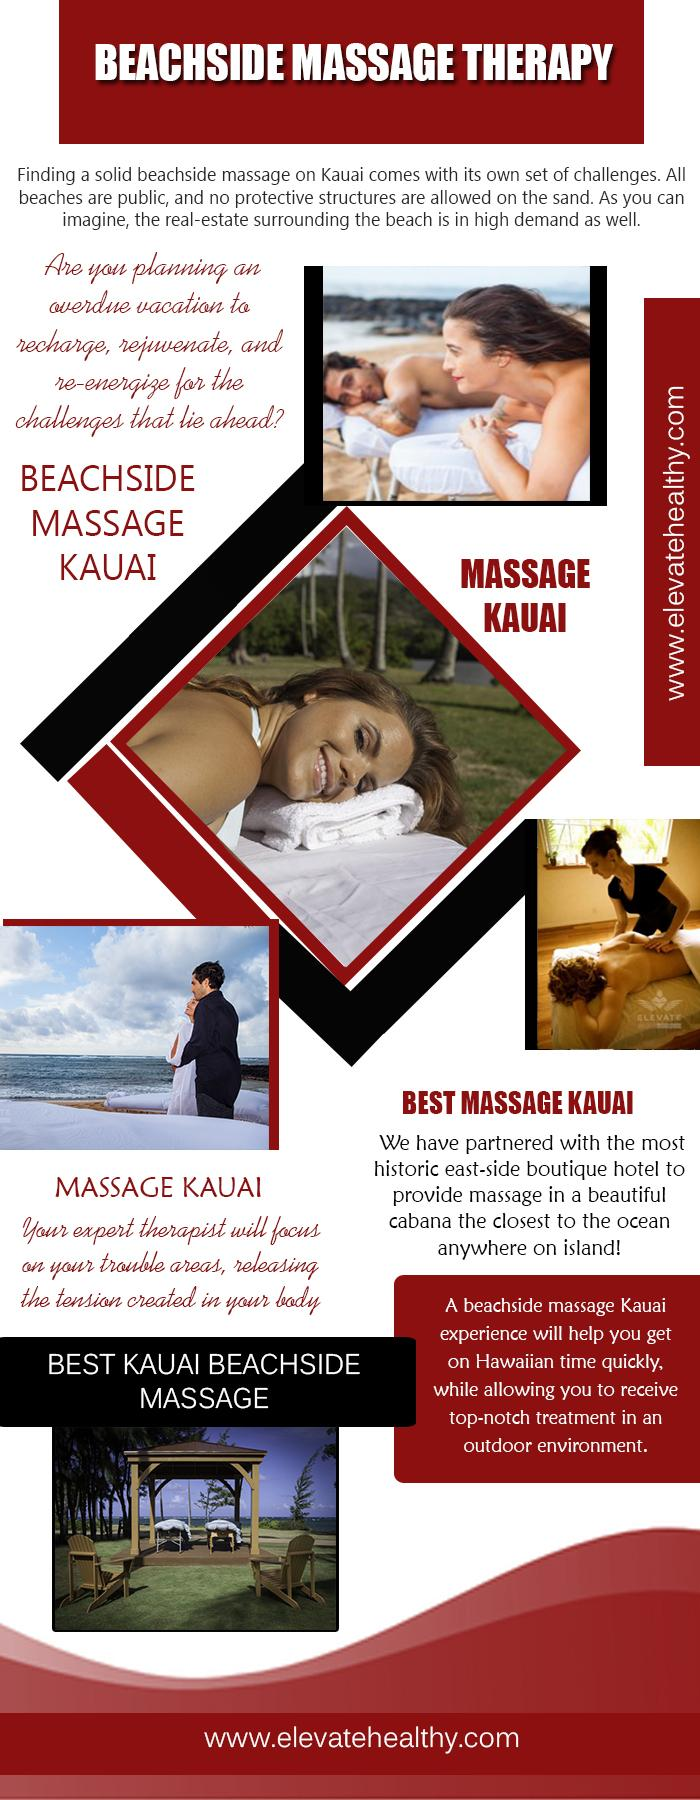 Best Kauai Beachside Massage